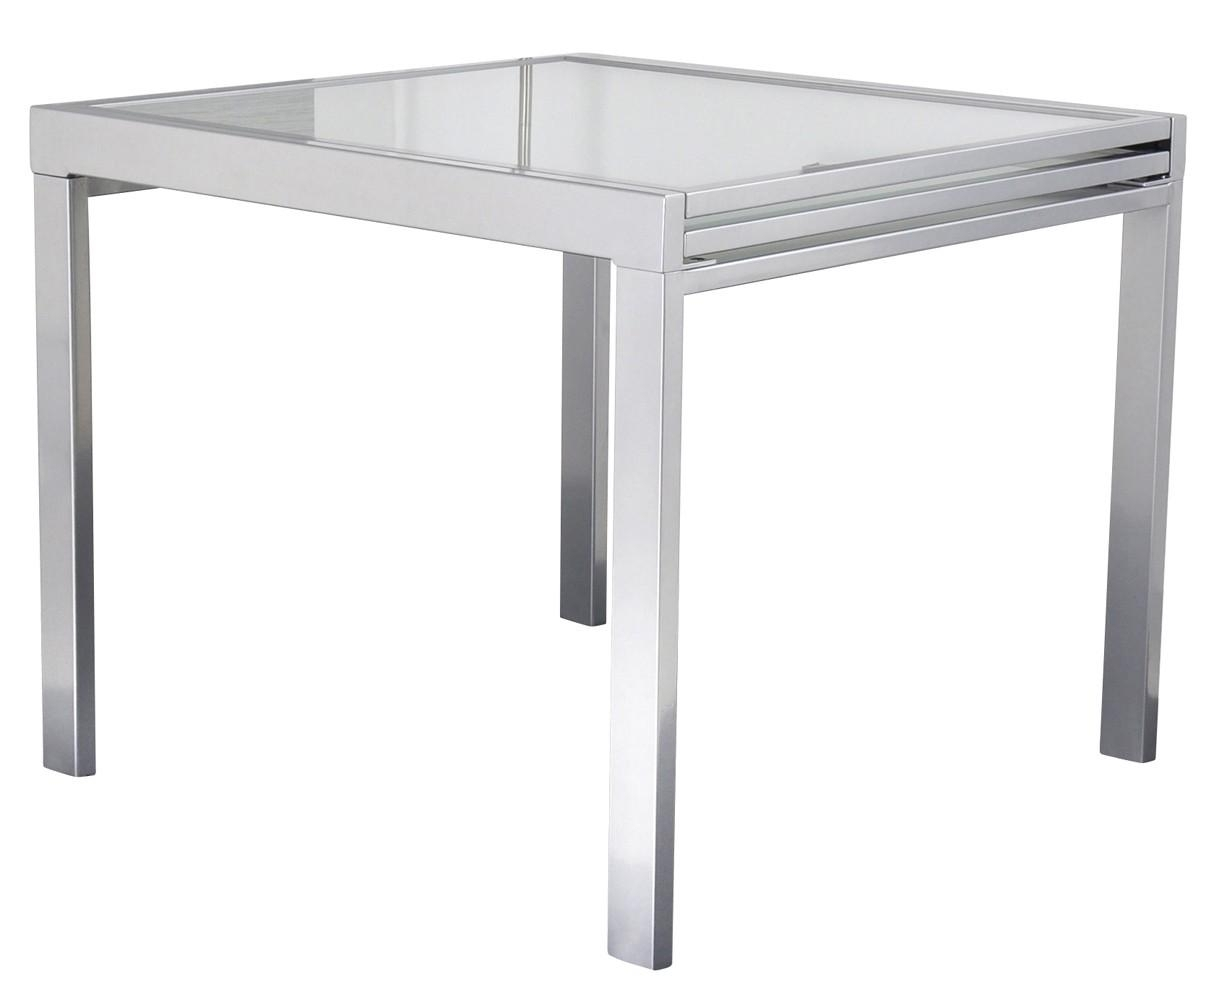 Les tendances table carr e extensible grise for Table carree extensible 12 personnes